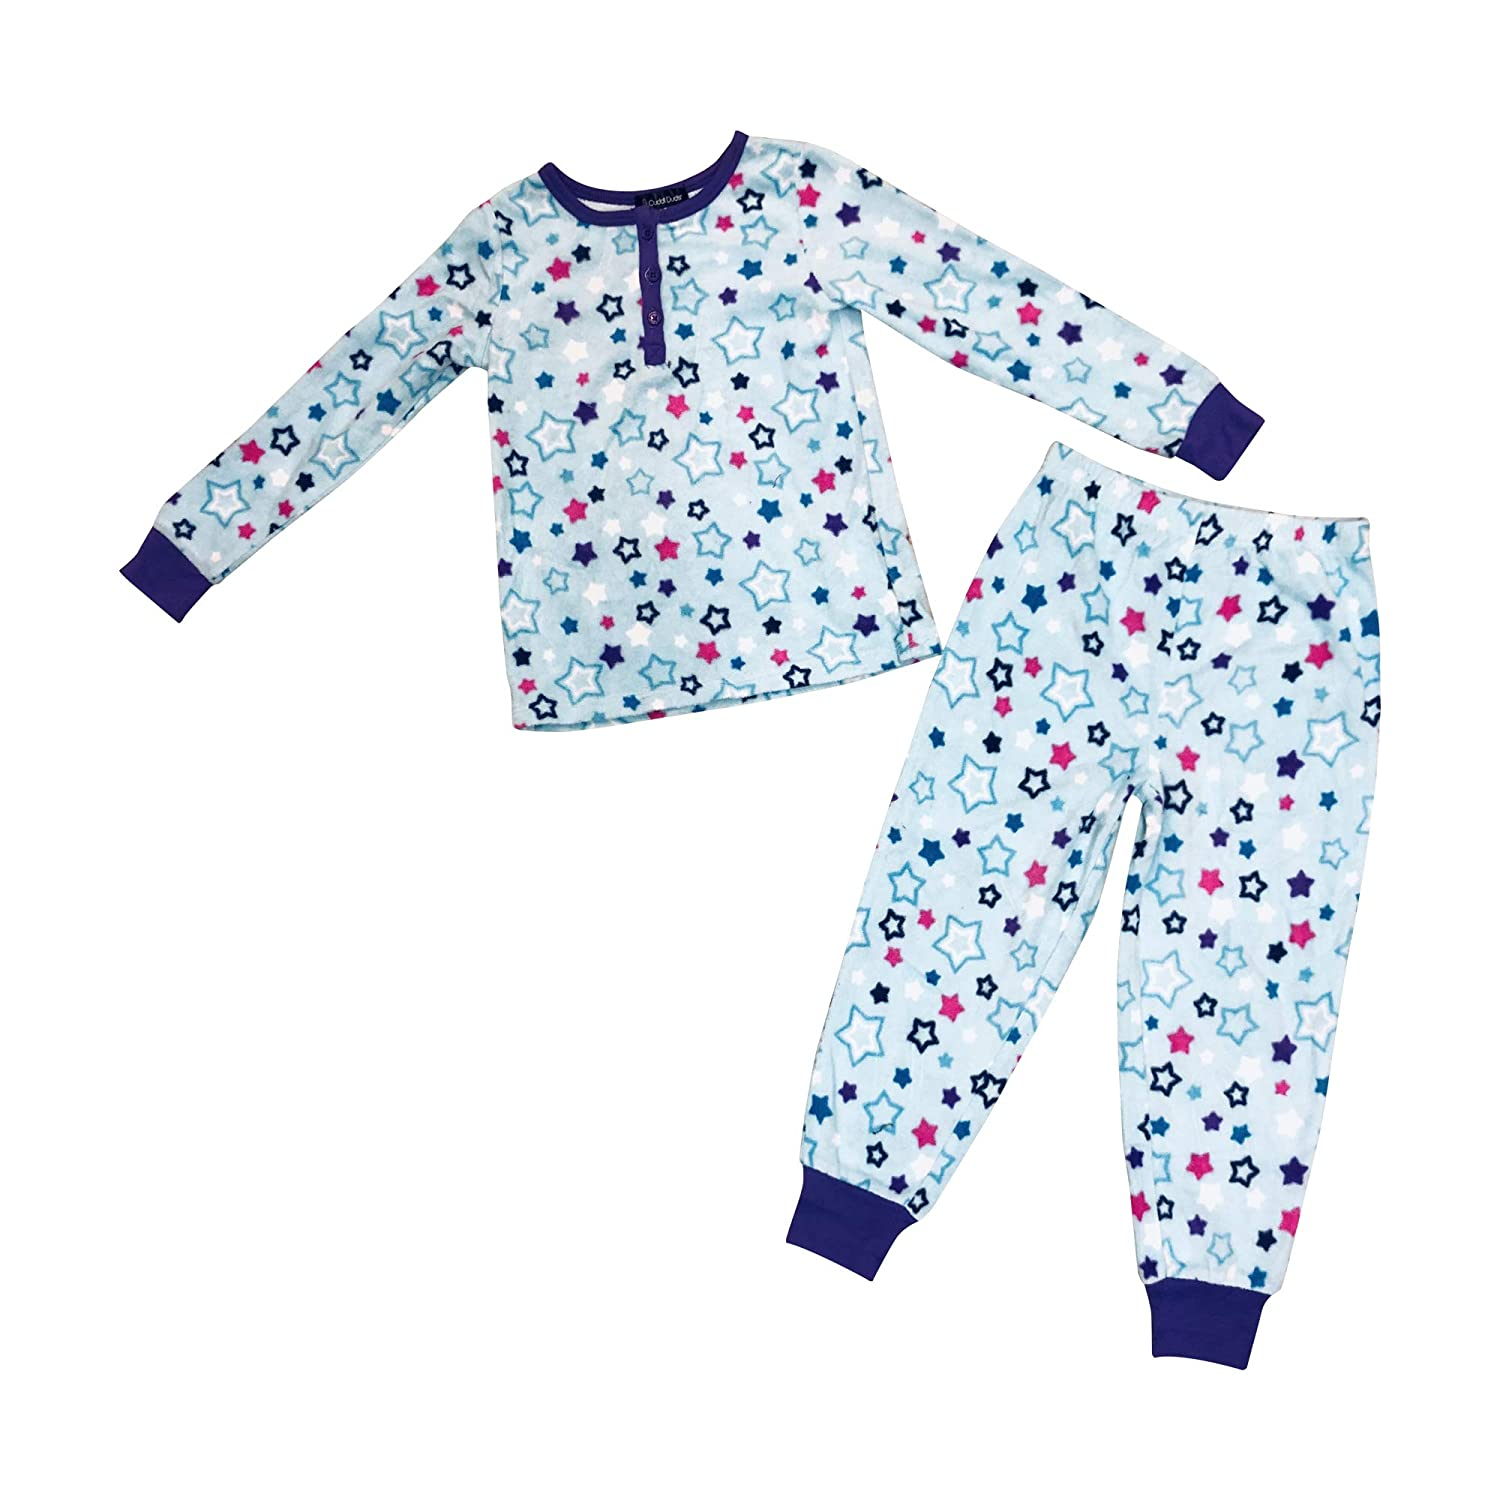 Girls Blue Fleece Pajama with Blue Pink Star Design 2 Piece Set